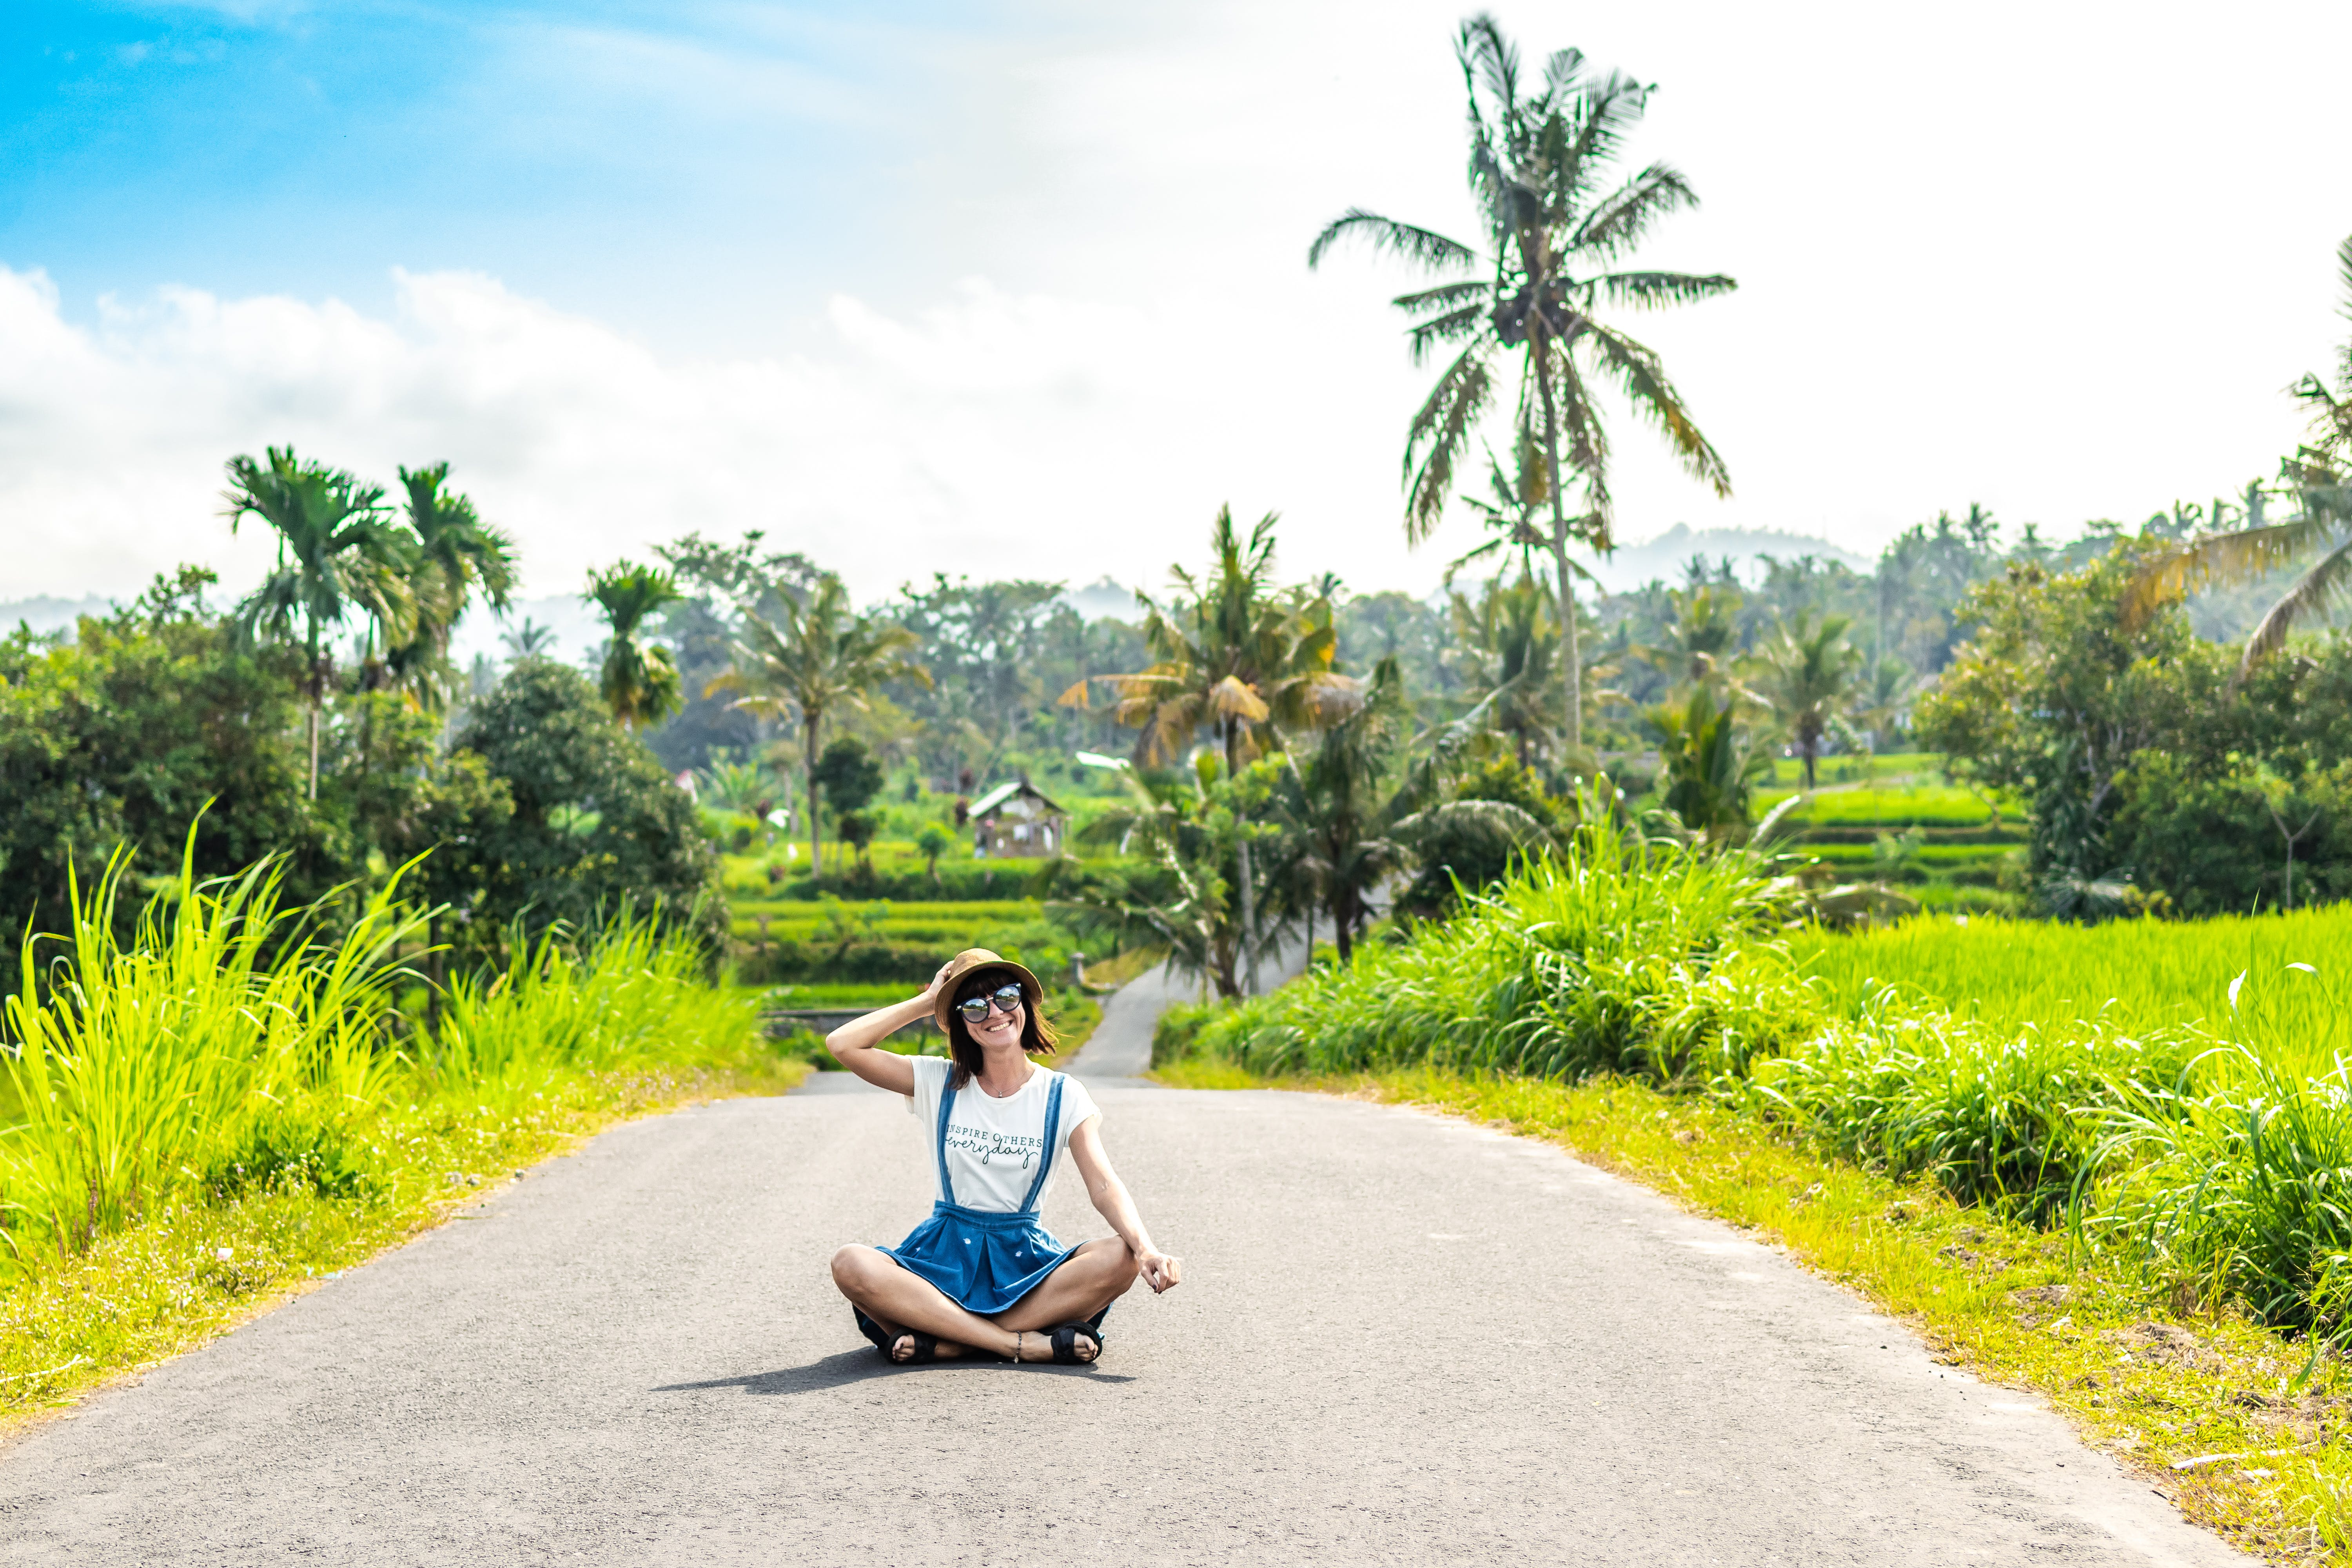 Woman Sitting on Road